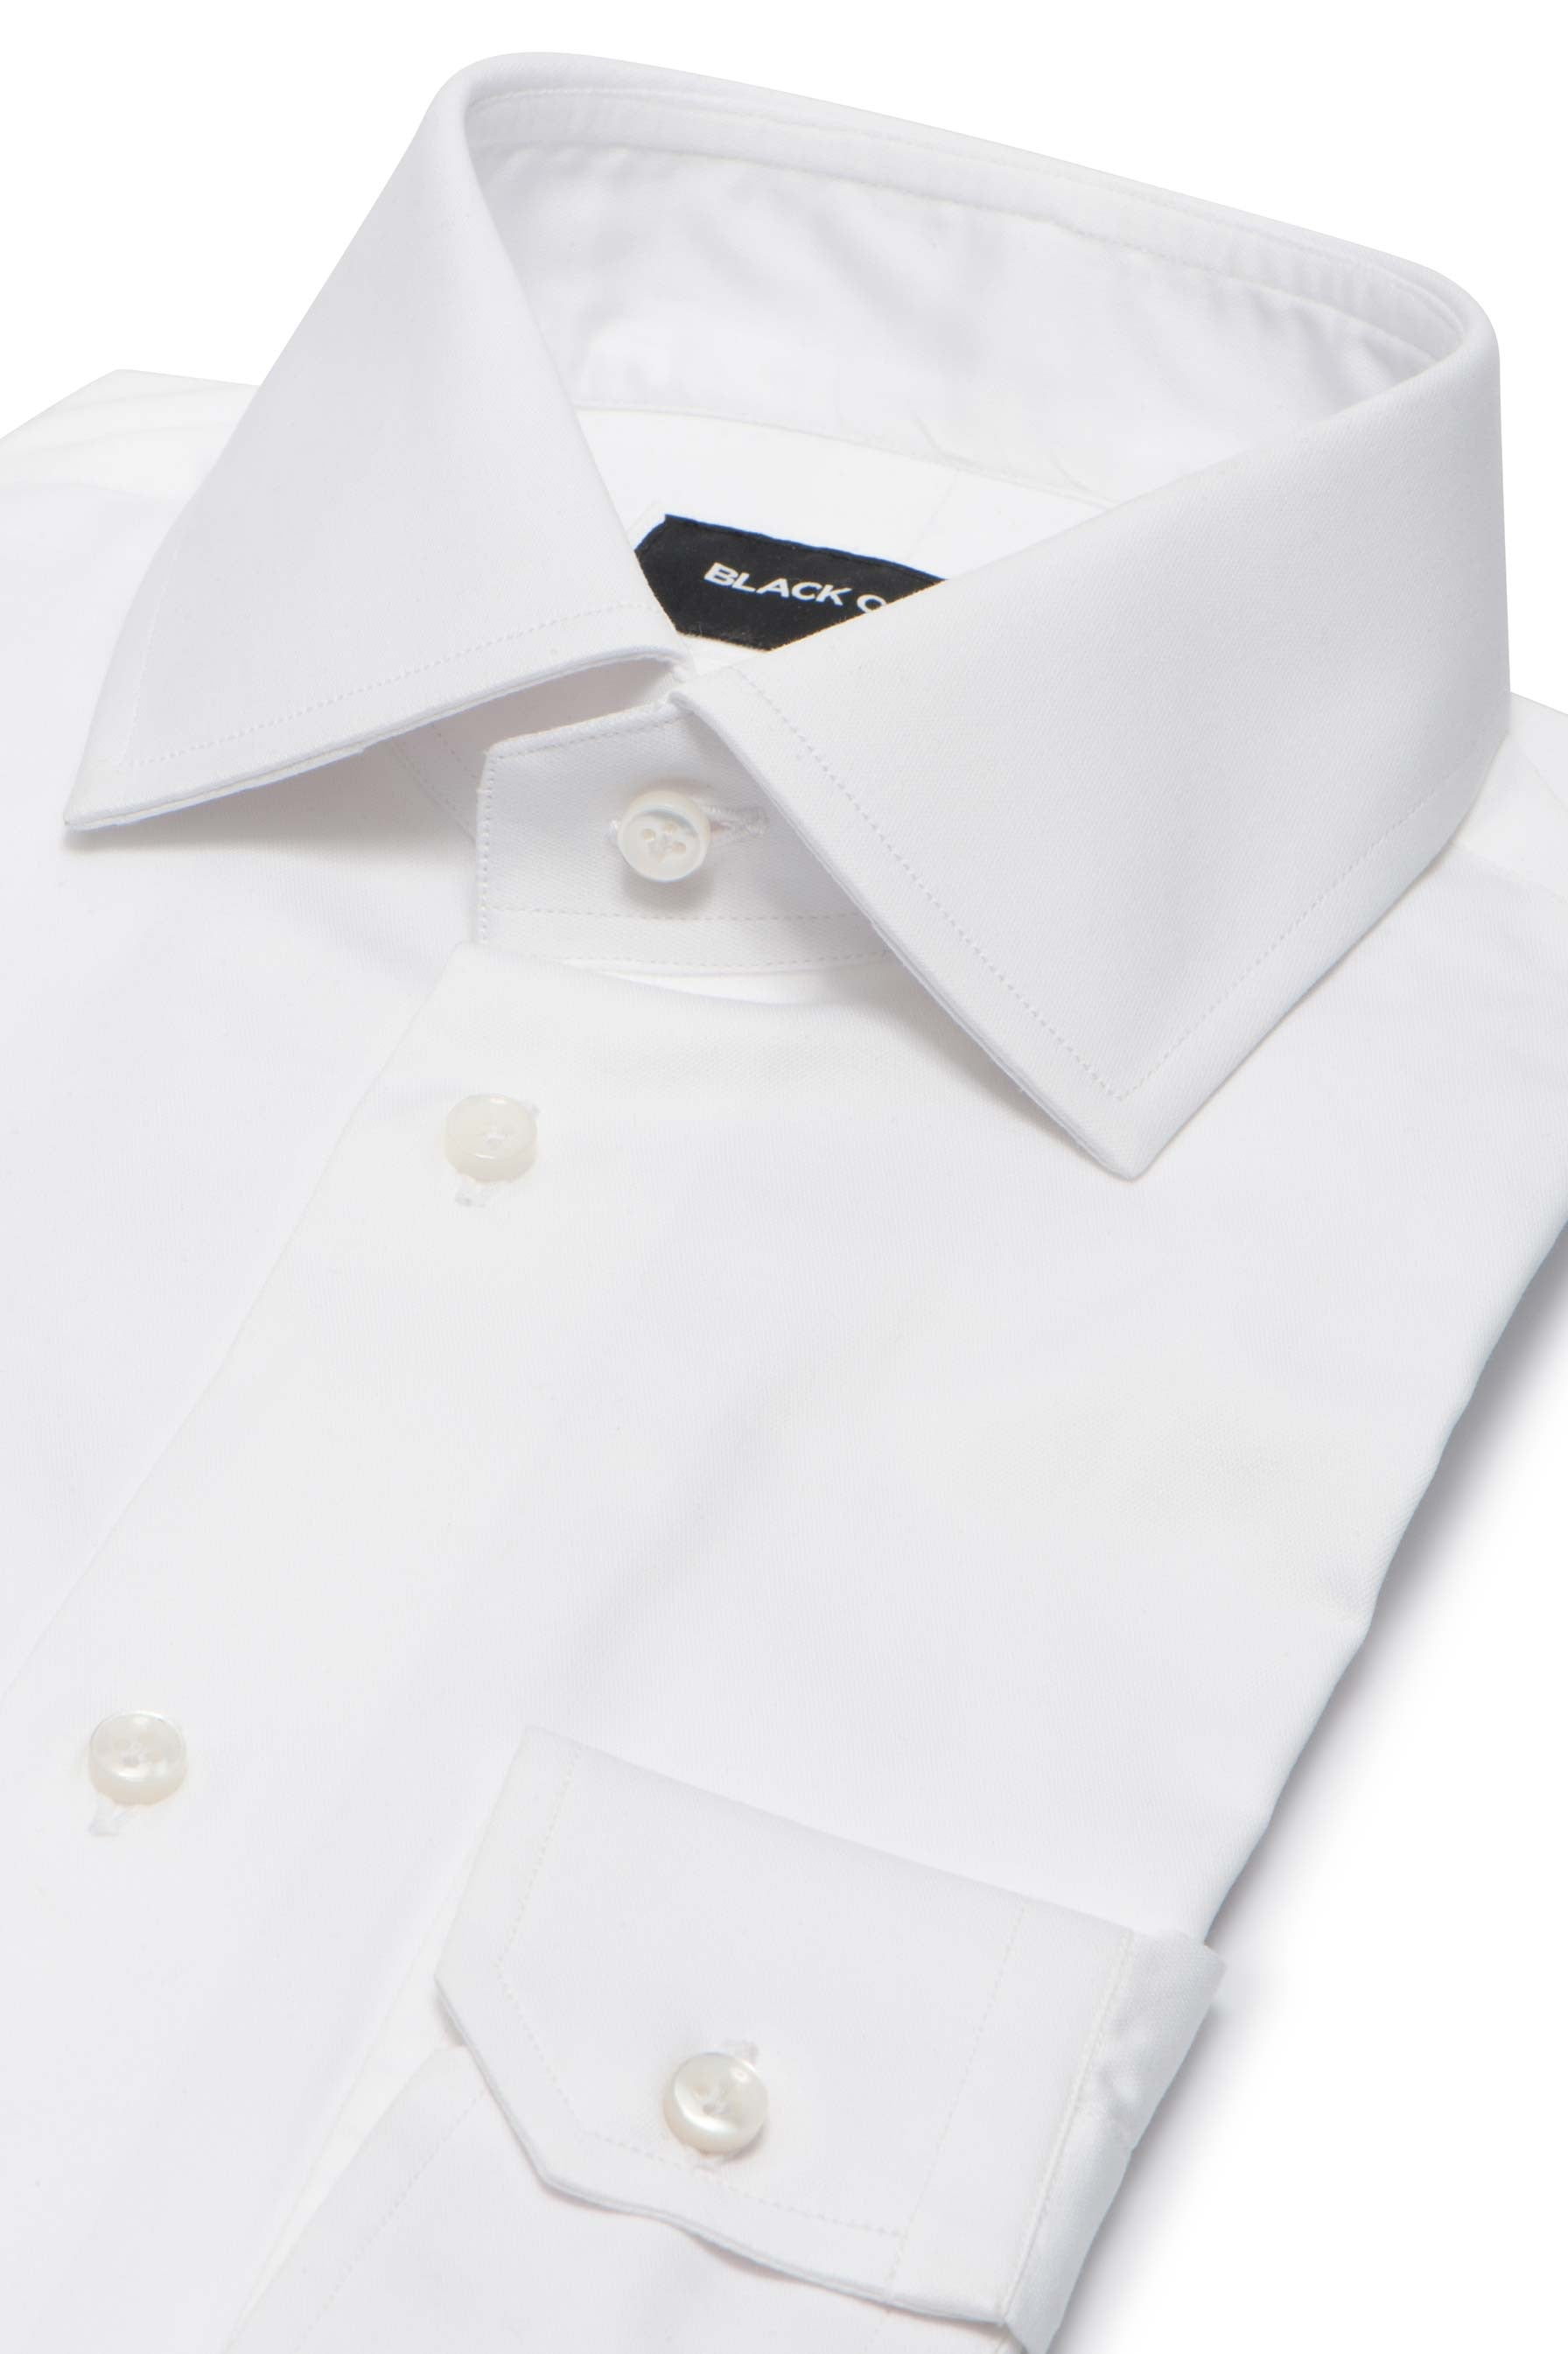 Solid White Plain Weave Dress Shirt